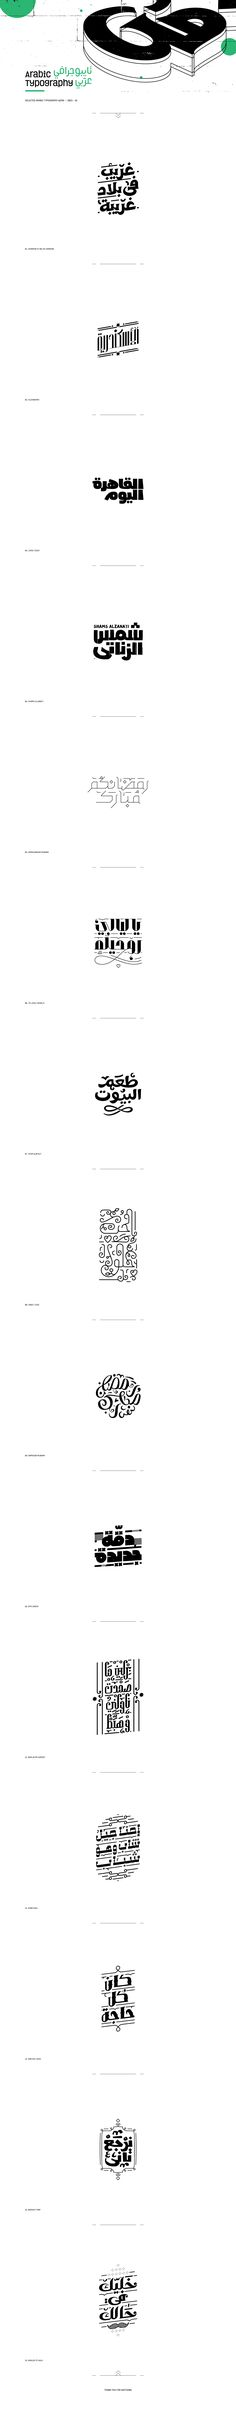 New Tattoo Quotes Arabic Calligraphy Behance Ideas Arab Typography, Typography Layout, Arabic Calligraphy Design, Arabic Design, Caligraphy, Layout Design, Logo Design, Typographic Design, Monogram Logo